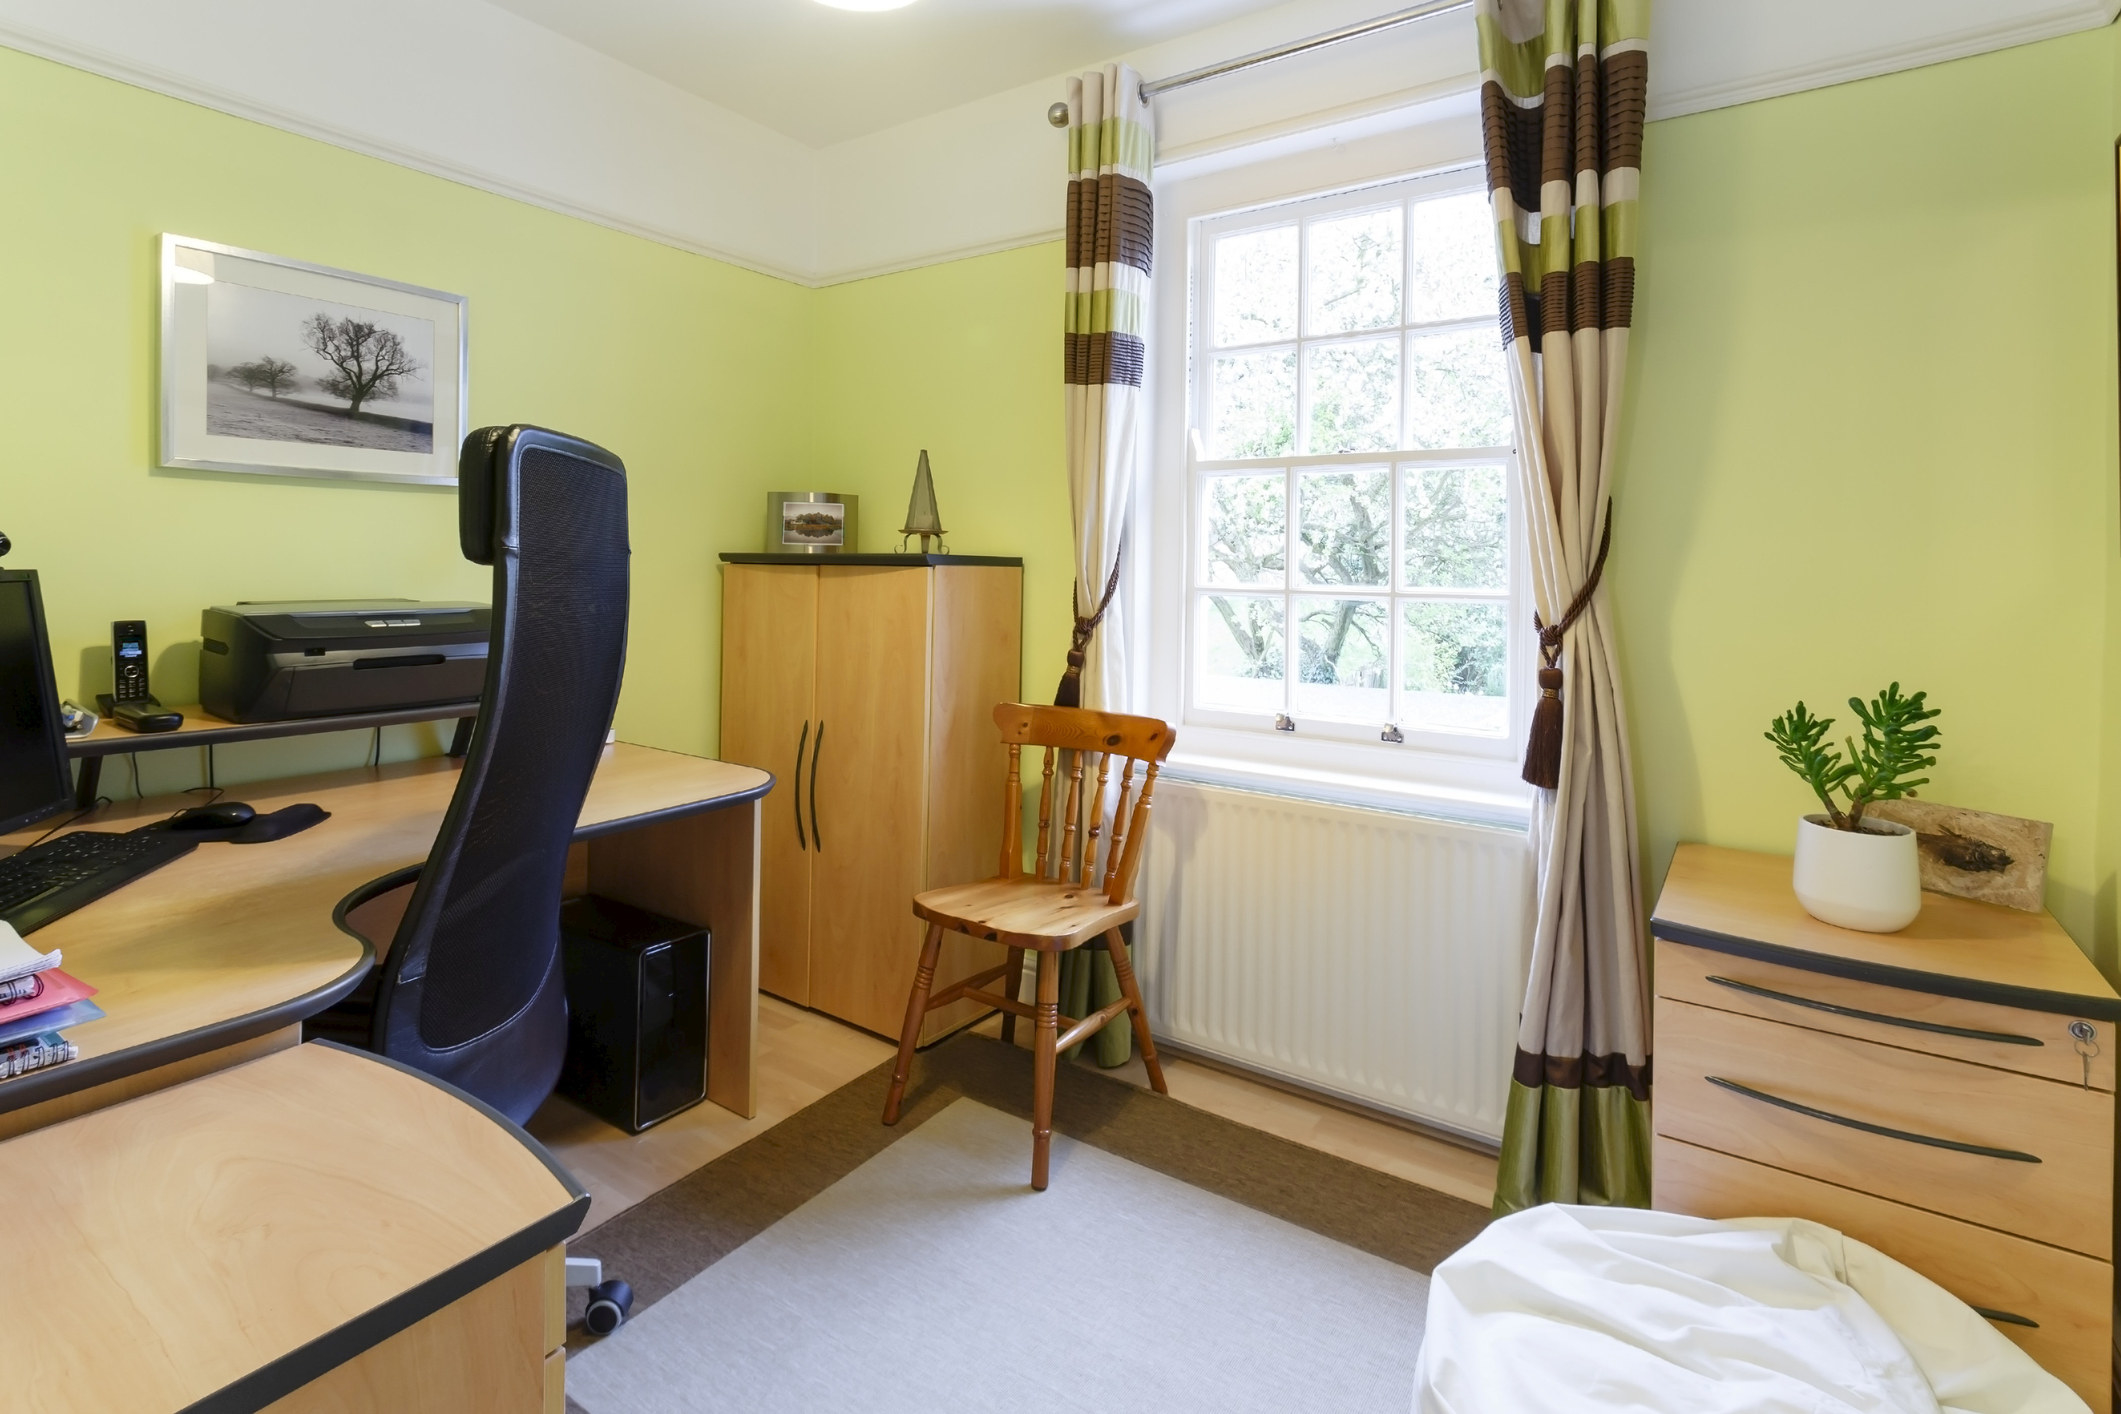 A bedroom with a desk, dresser, curtains revealing a window, and chair